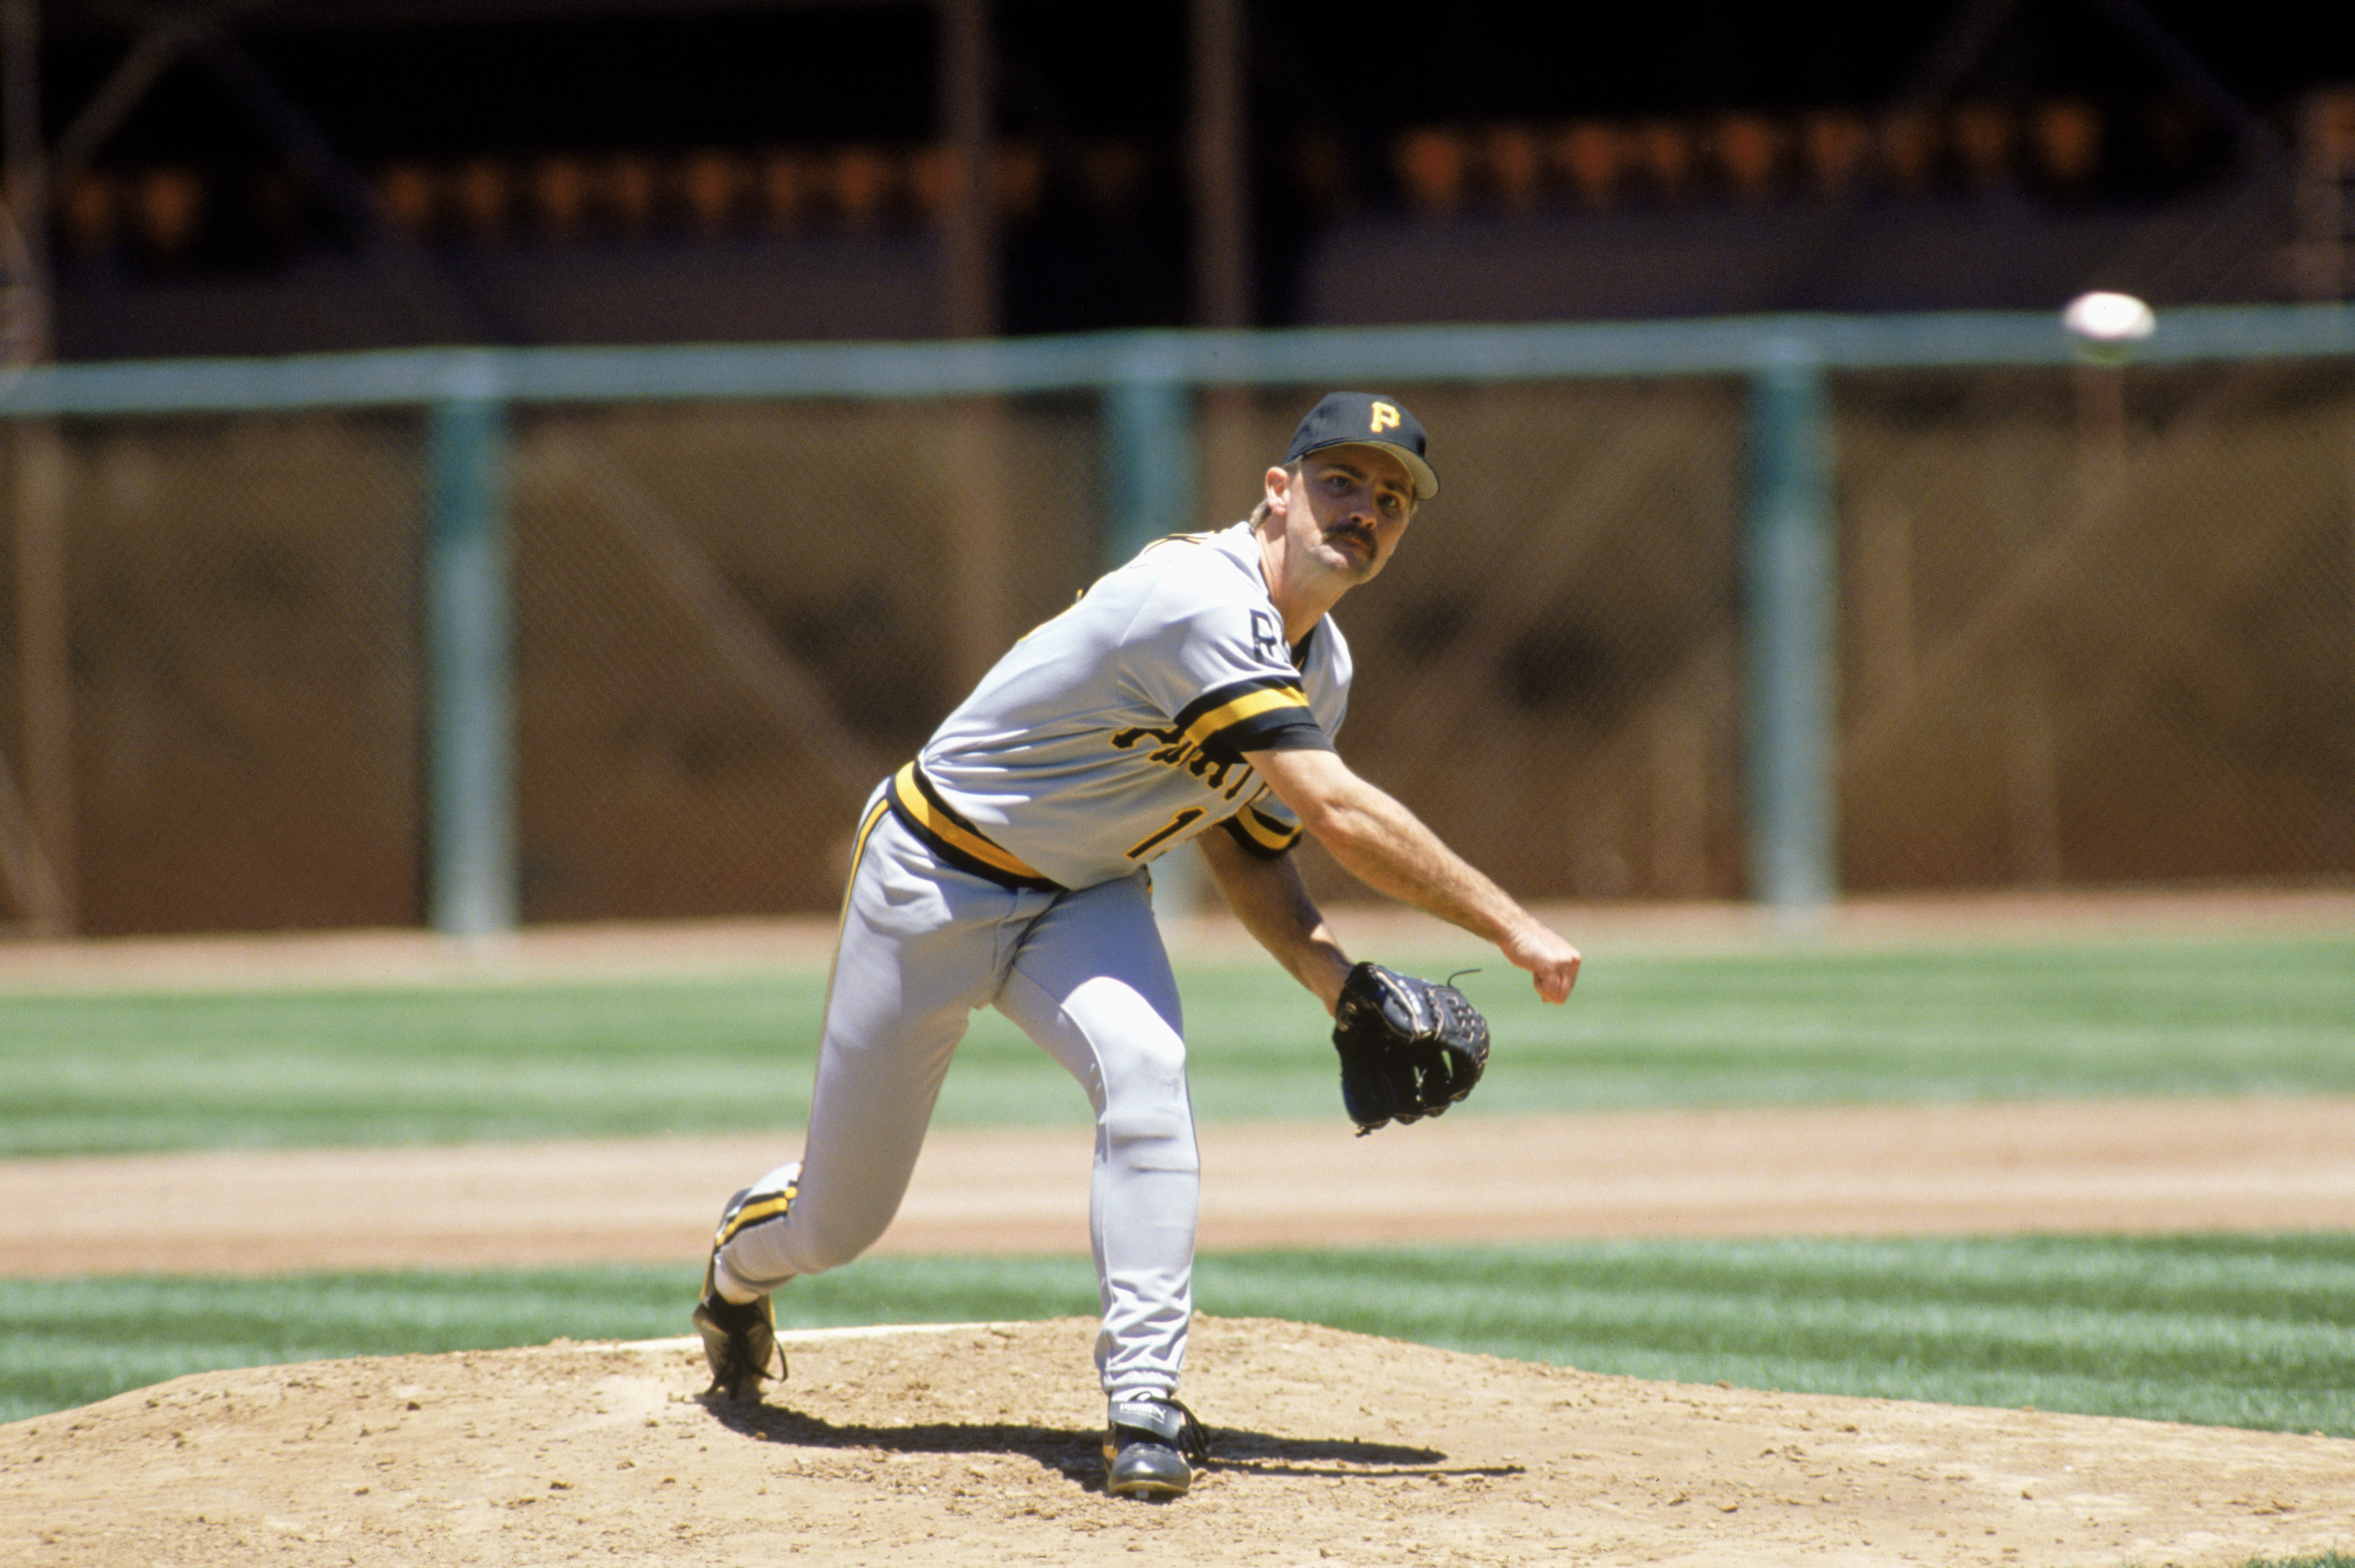 SAN FRANCISCO - 1988:  Doug Drabek #15 of the Pittsburgh Pirates delivers a pitch during a 1988 MLB season game against the San Francisco Giants at Candlestick Park in San Francisco, California.  (Photo by Otto Greule Jr/Getty Images)